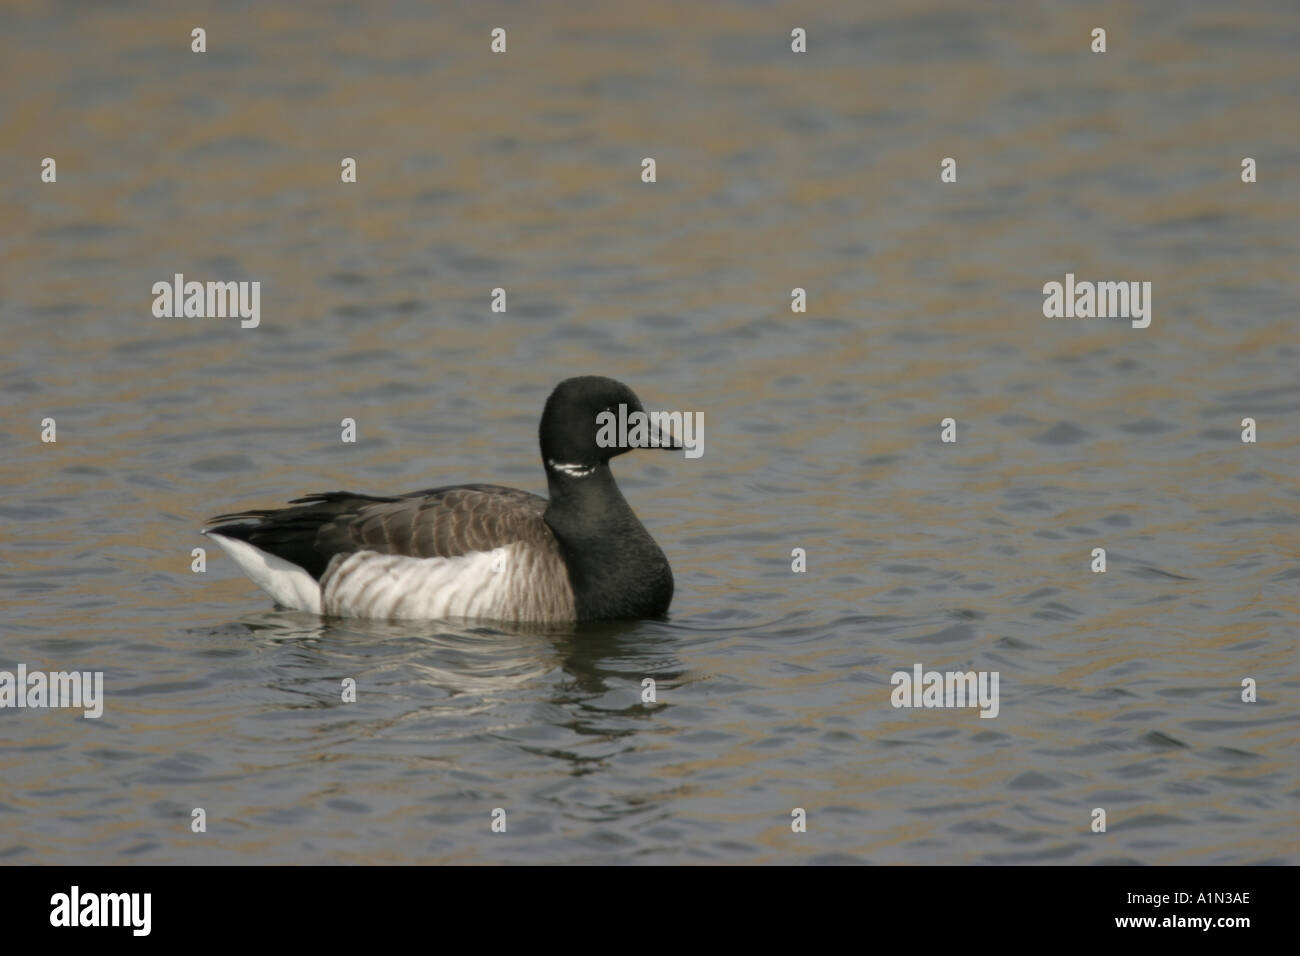 Brant member of the goose family which is almost exclusively coastal is found in flocks on shallow bays and marshes It s flight is usually low and fast with swept back wings - Stock Image